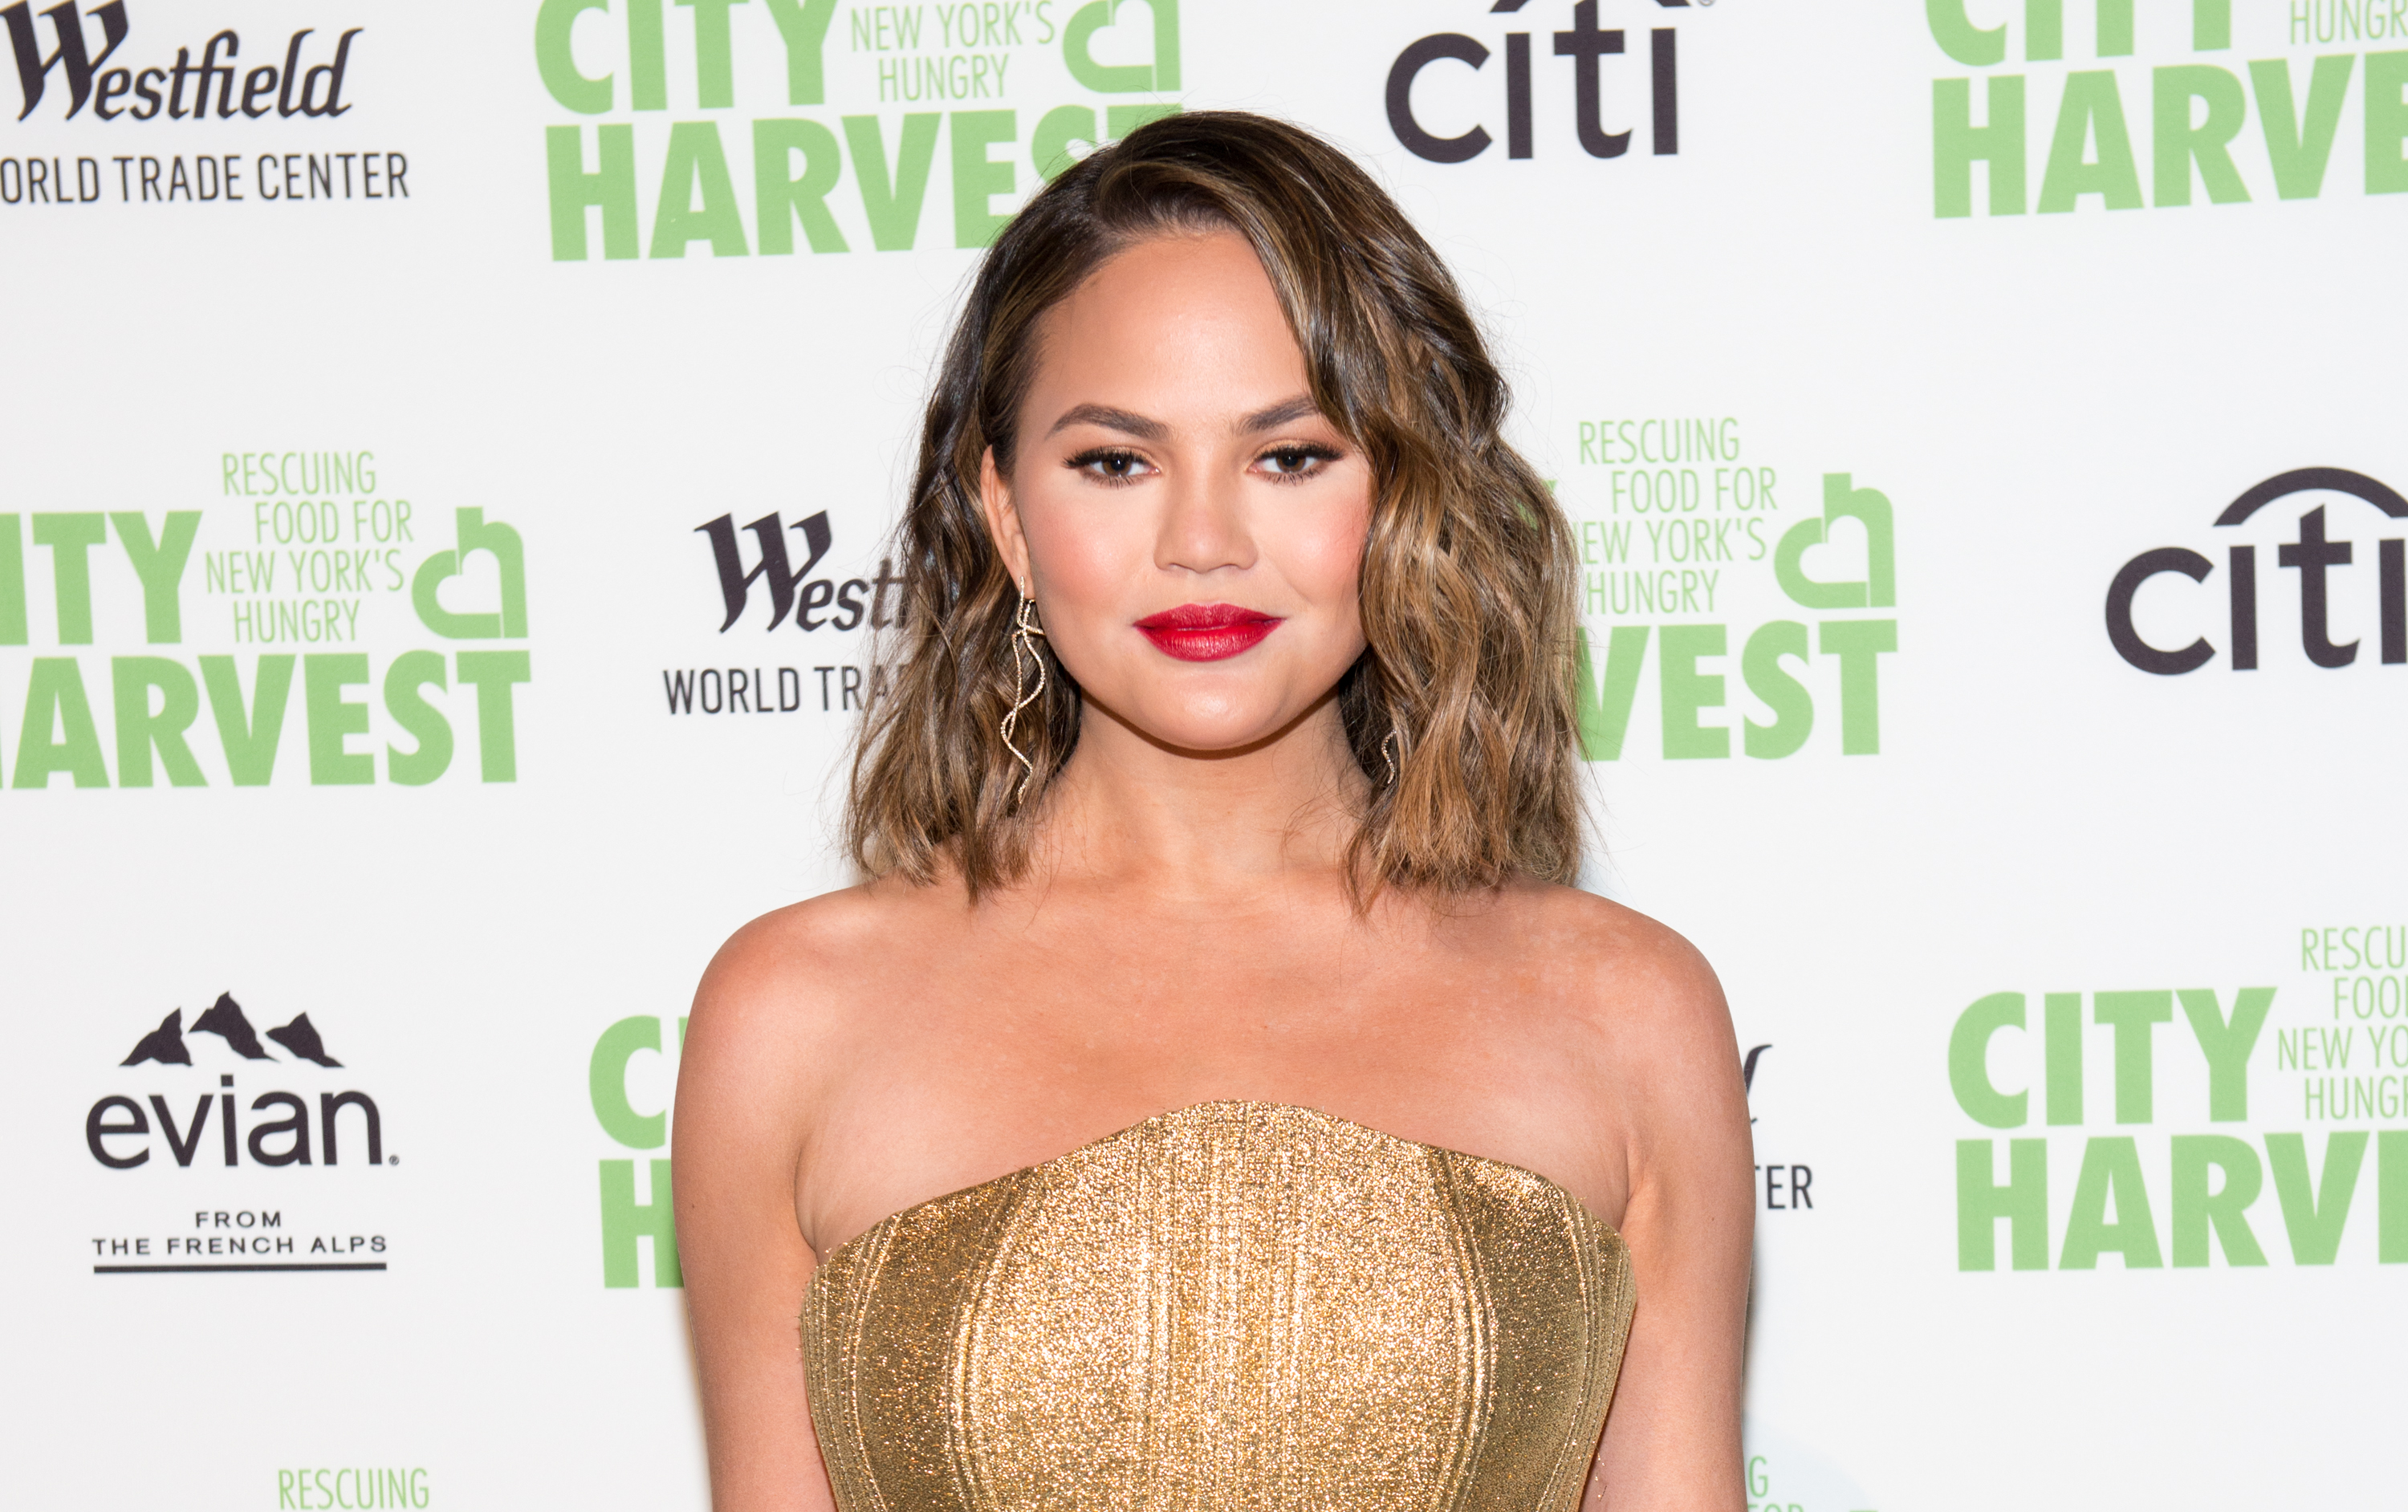 Chrissy Teigen explains that she's had plastic surgery, and doesn't regret it one bit